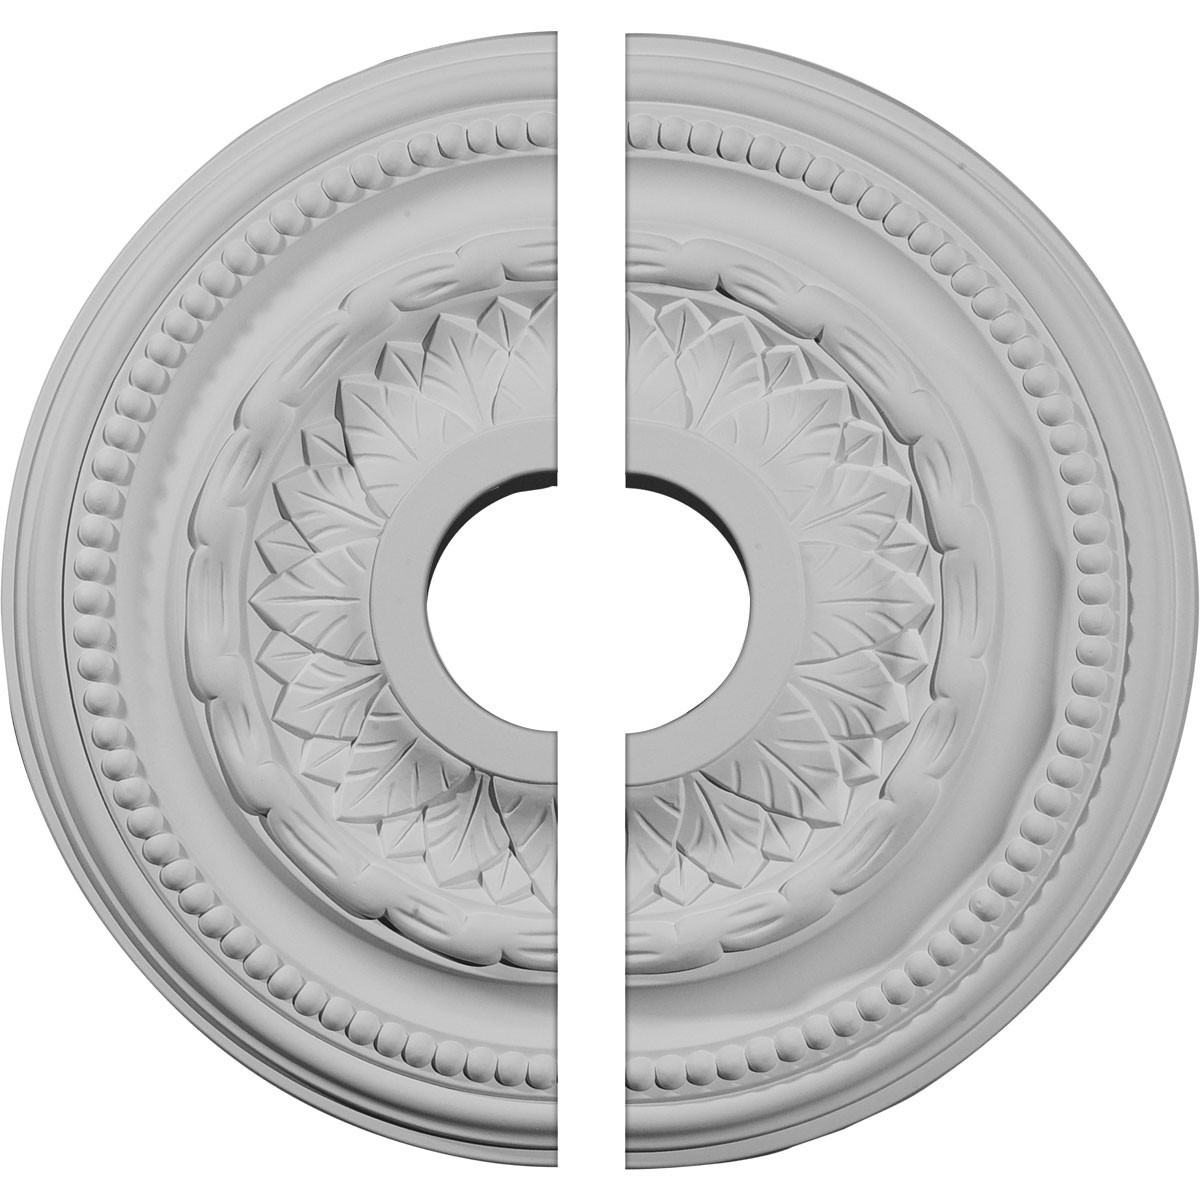 """EM-CM15GA2 - 15 3/4""""OD x 3 1/4""""ID x 1""""P Galway Ceiling Medallion, Two Piece (Fits Canopies up to 3 1/4"""")"""